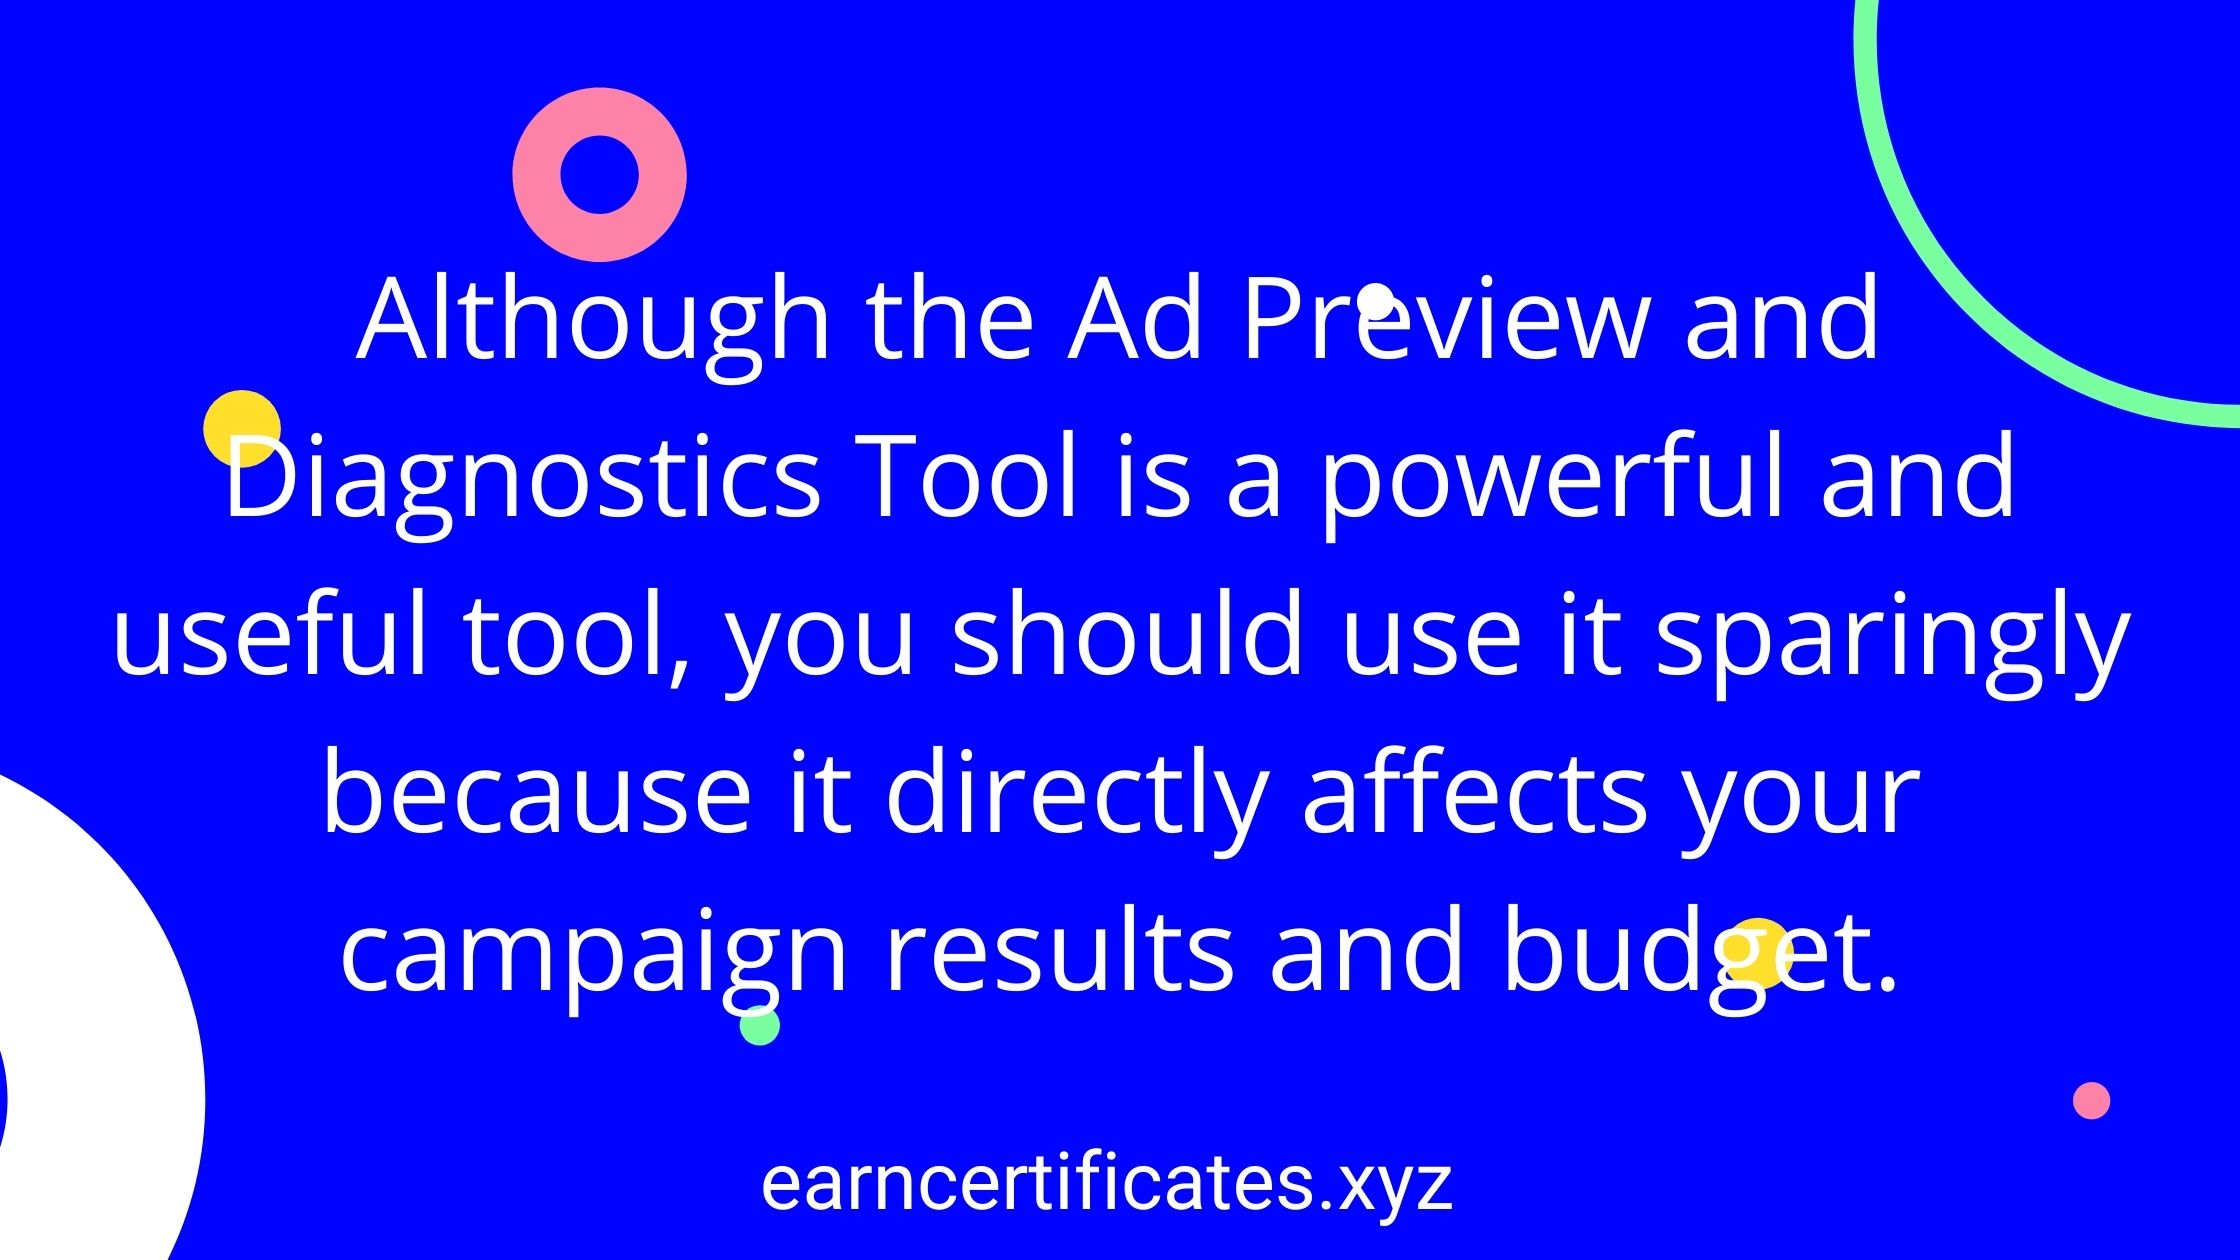 Although the Ad Preview and Diagnostics Tool is a powerful and useful tool, you should use it sparingly because it directly affects your campaign results and budget.